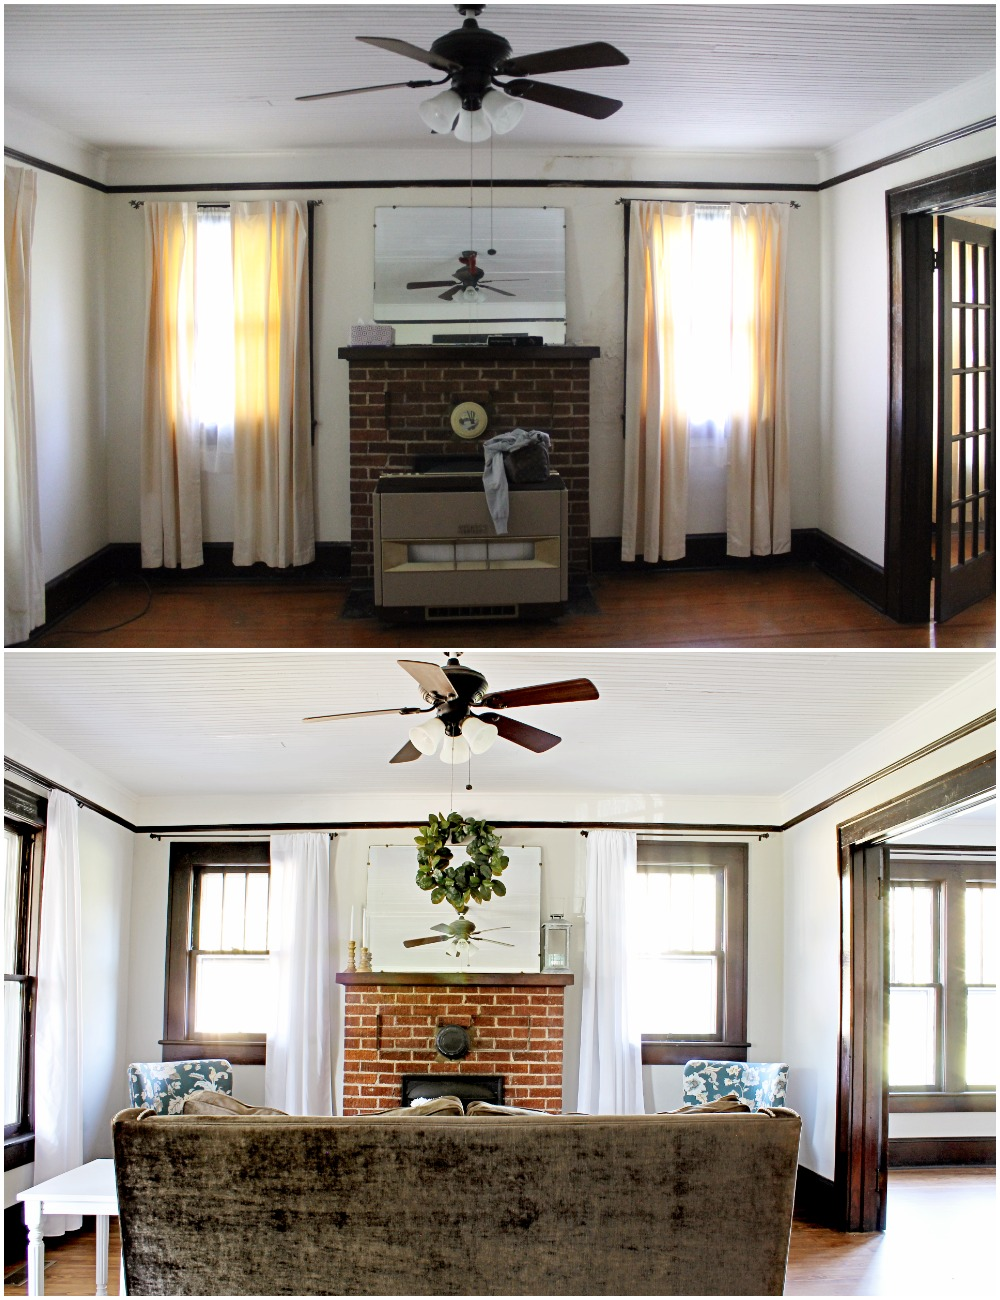 House Flipping Before and Afters - Living Room Budget Renovation Remodel, Wood Trim Paint Colors - Sherwin Williams Repose Gray (1).jpg